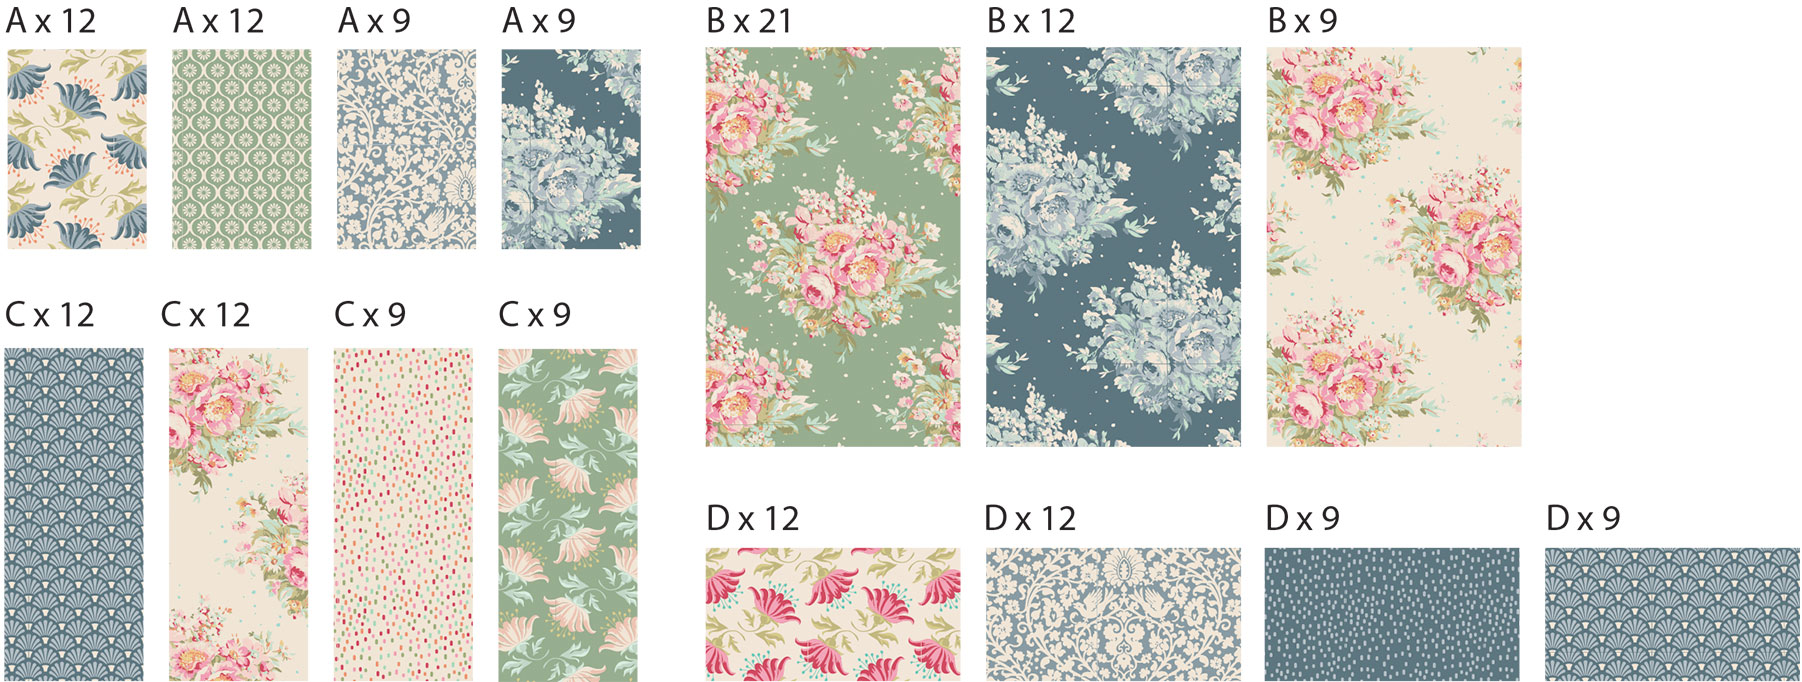 Painting-Flowers-Quilt-2